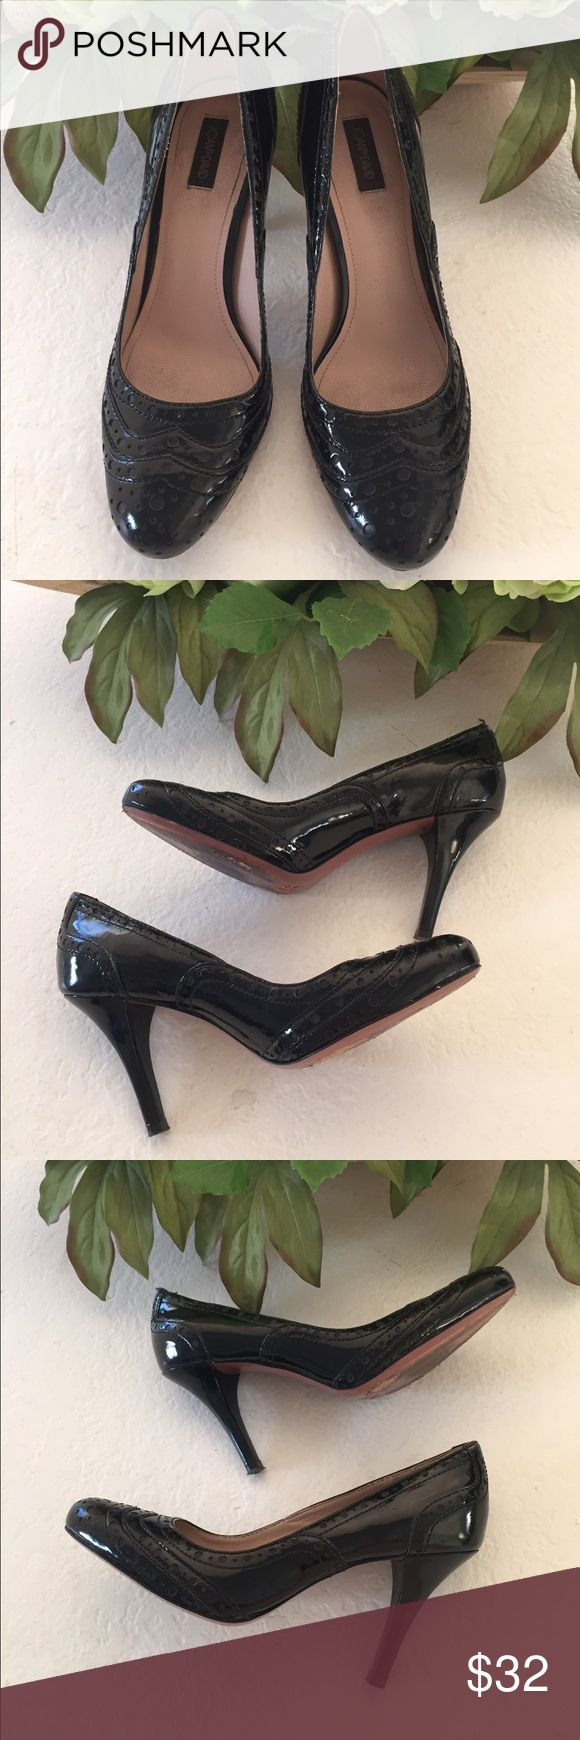 Joan & David patent leather heels Mary Jane meets patent leather in these darling shoes Joan & David Shoes